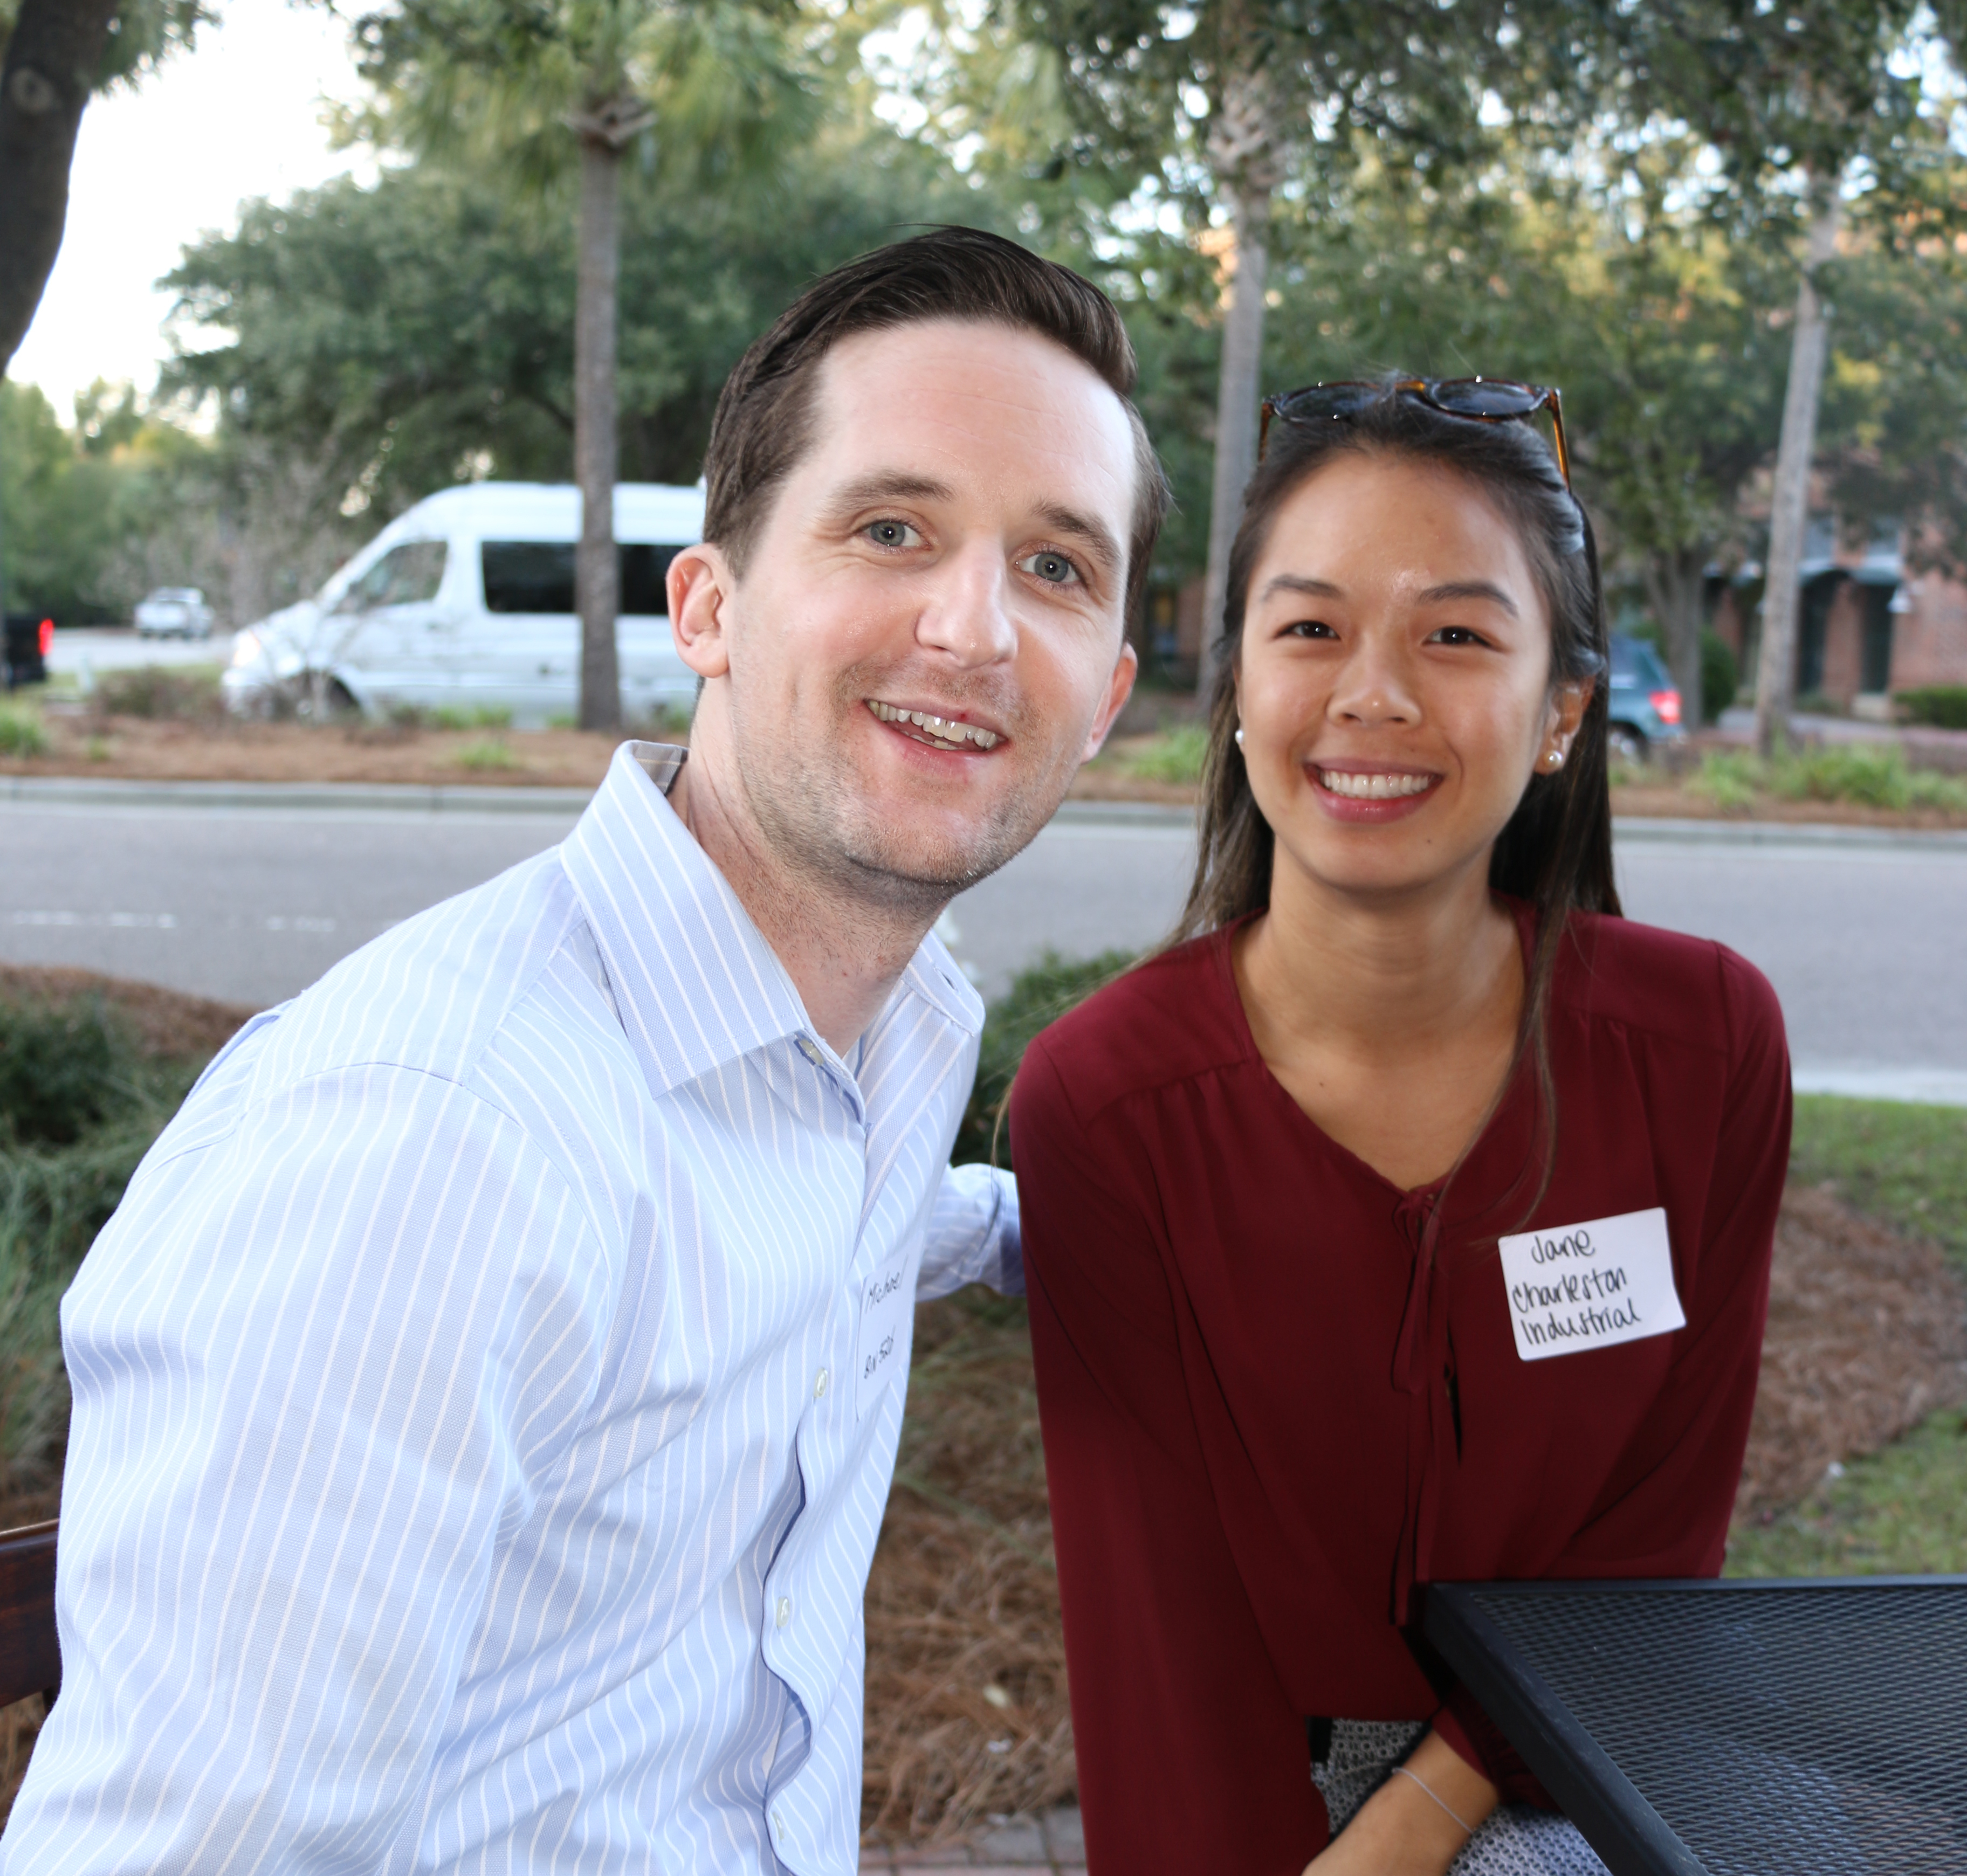 Michael Crotty of BIN 526 and Jane Unkasekvinai of Charleston Industrial chat during DIBA's Block Party at Ristorante LIDI on Friday, Oct. 25.